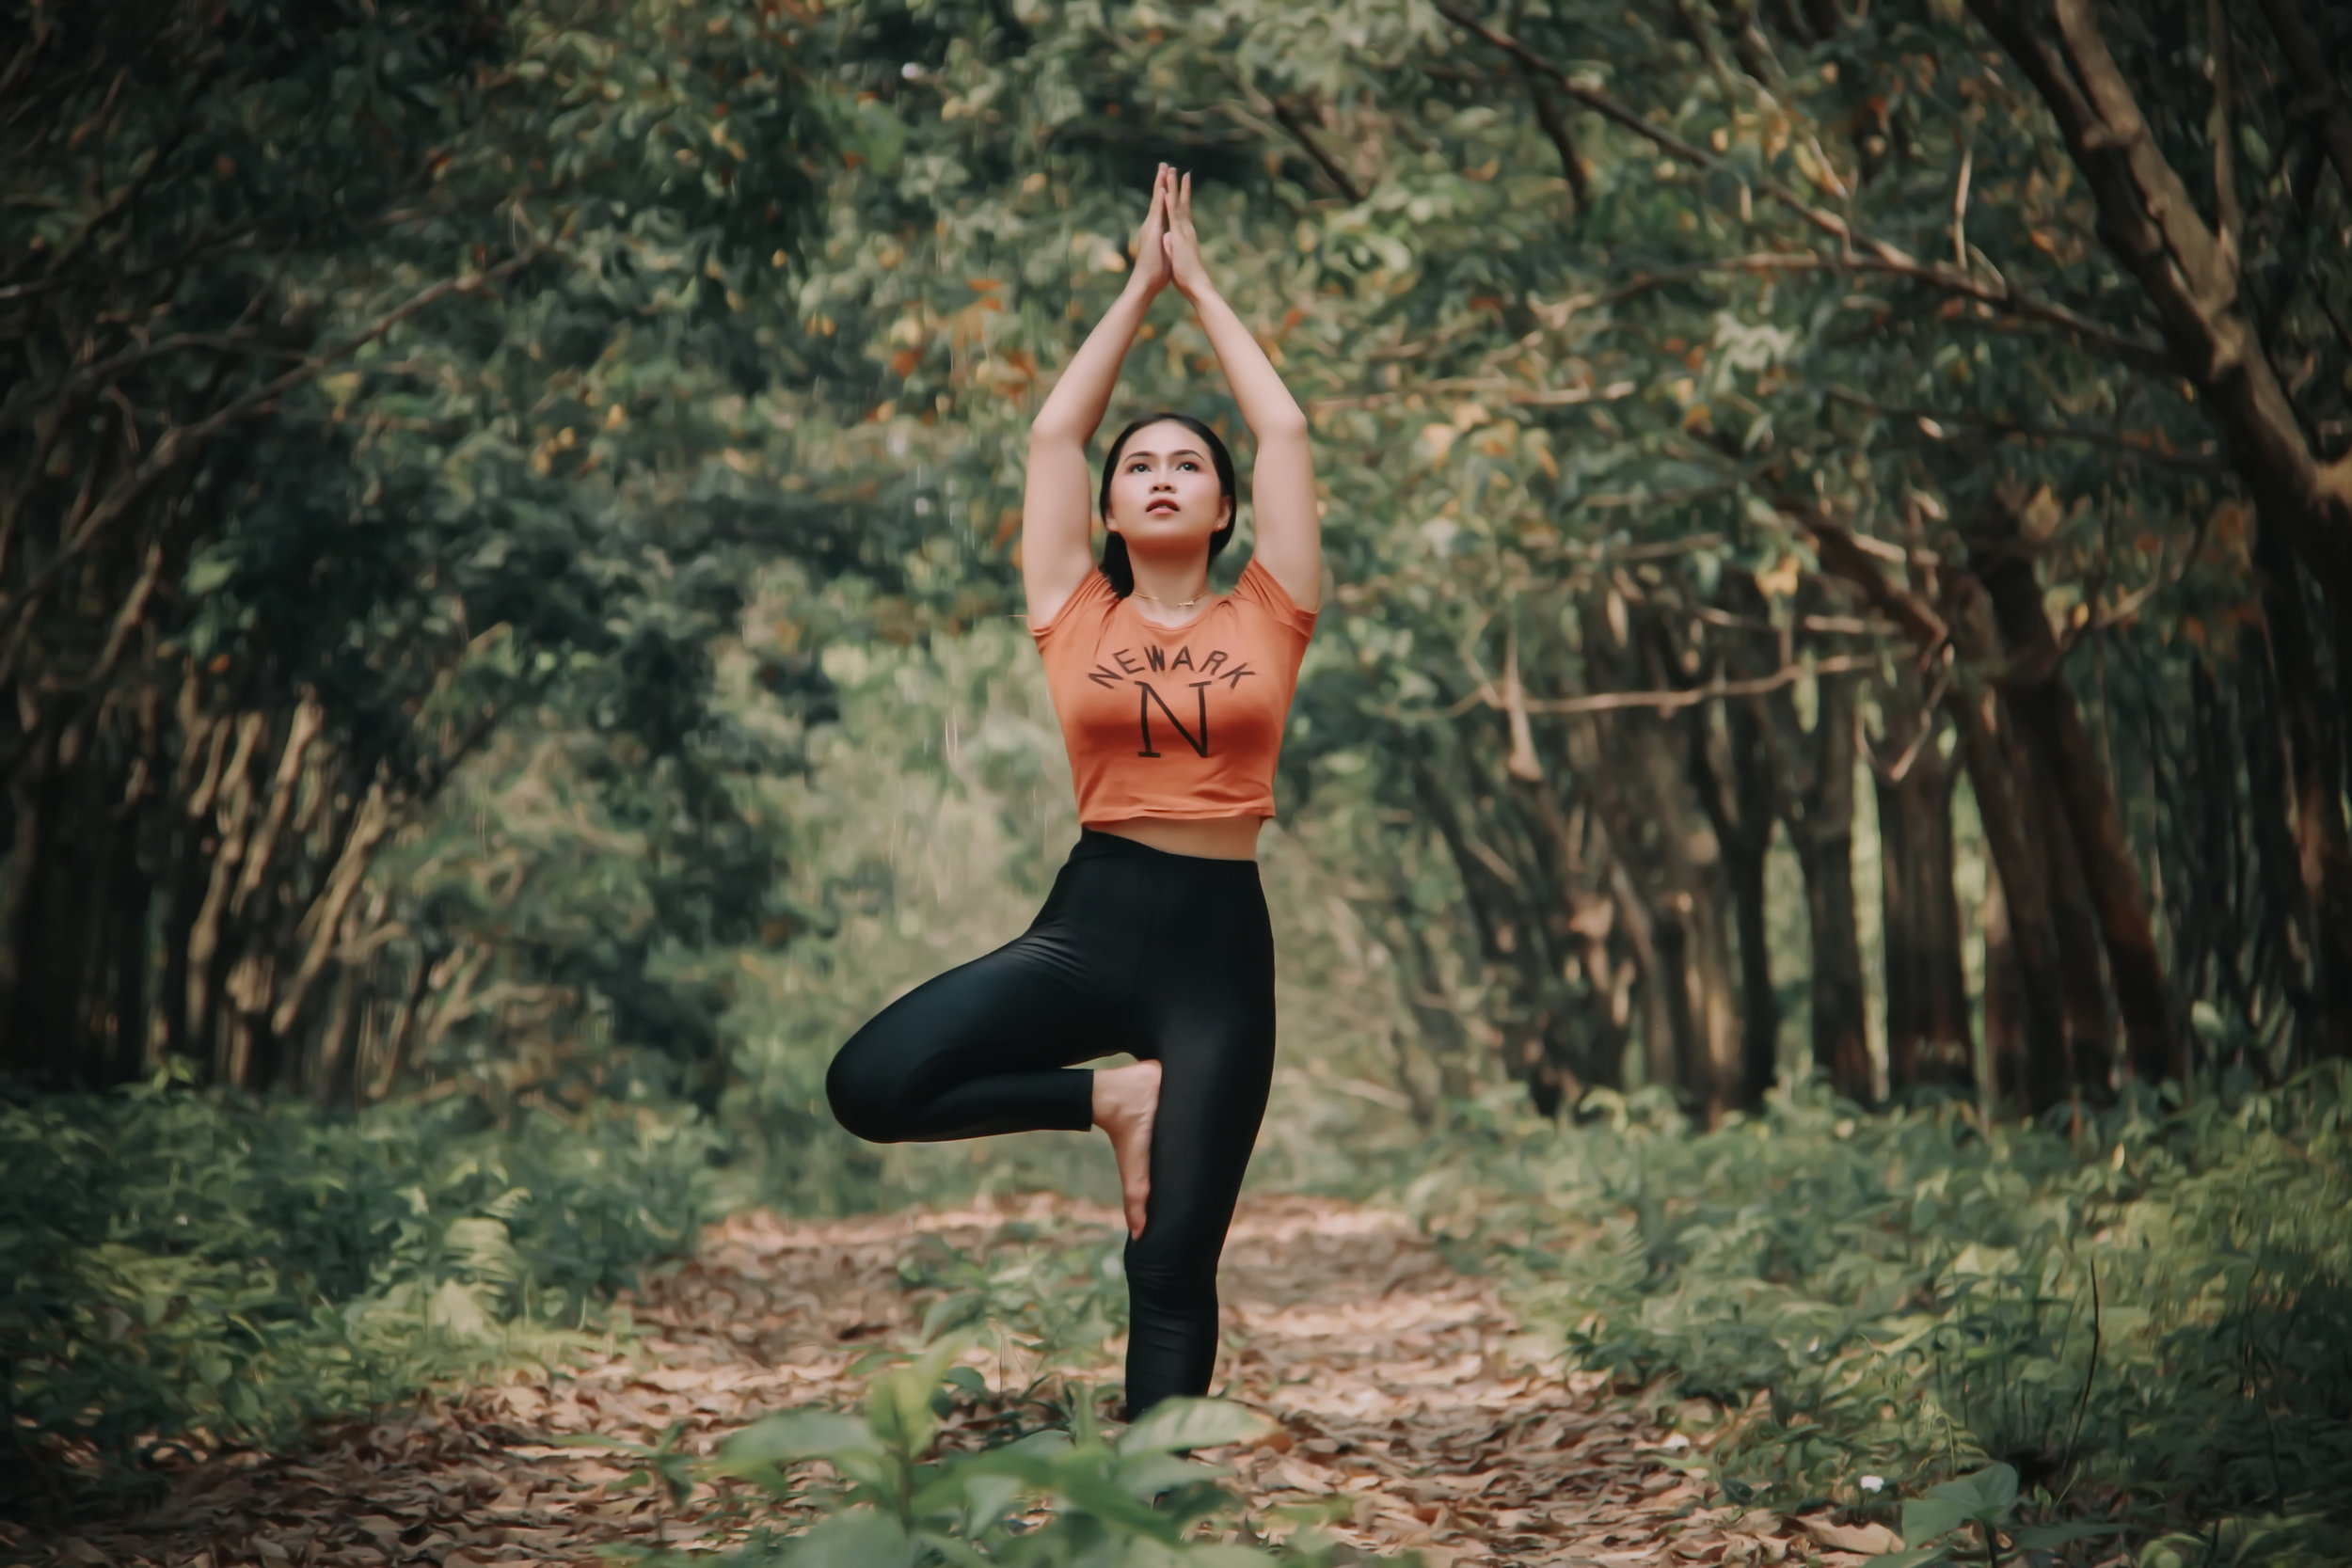 yoga and meditation can help you connect with your body